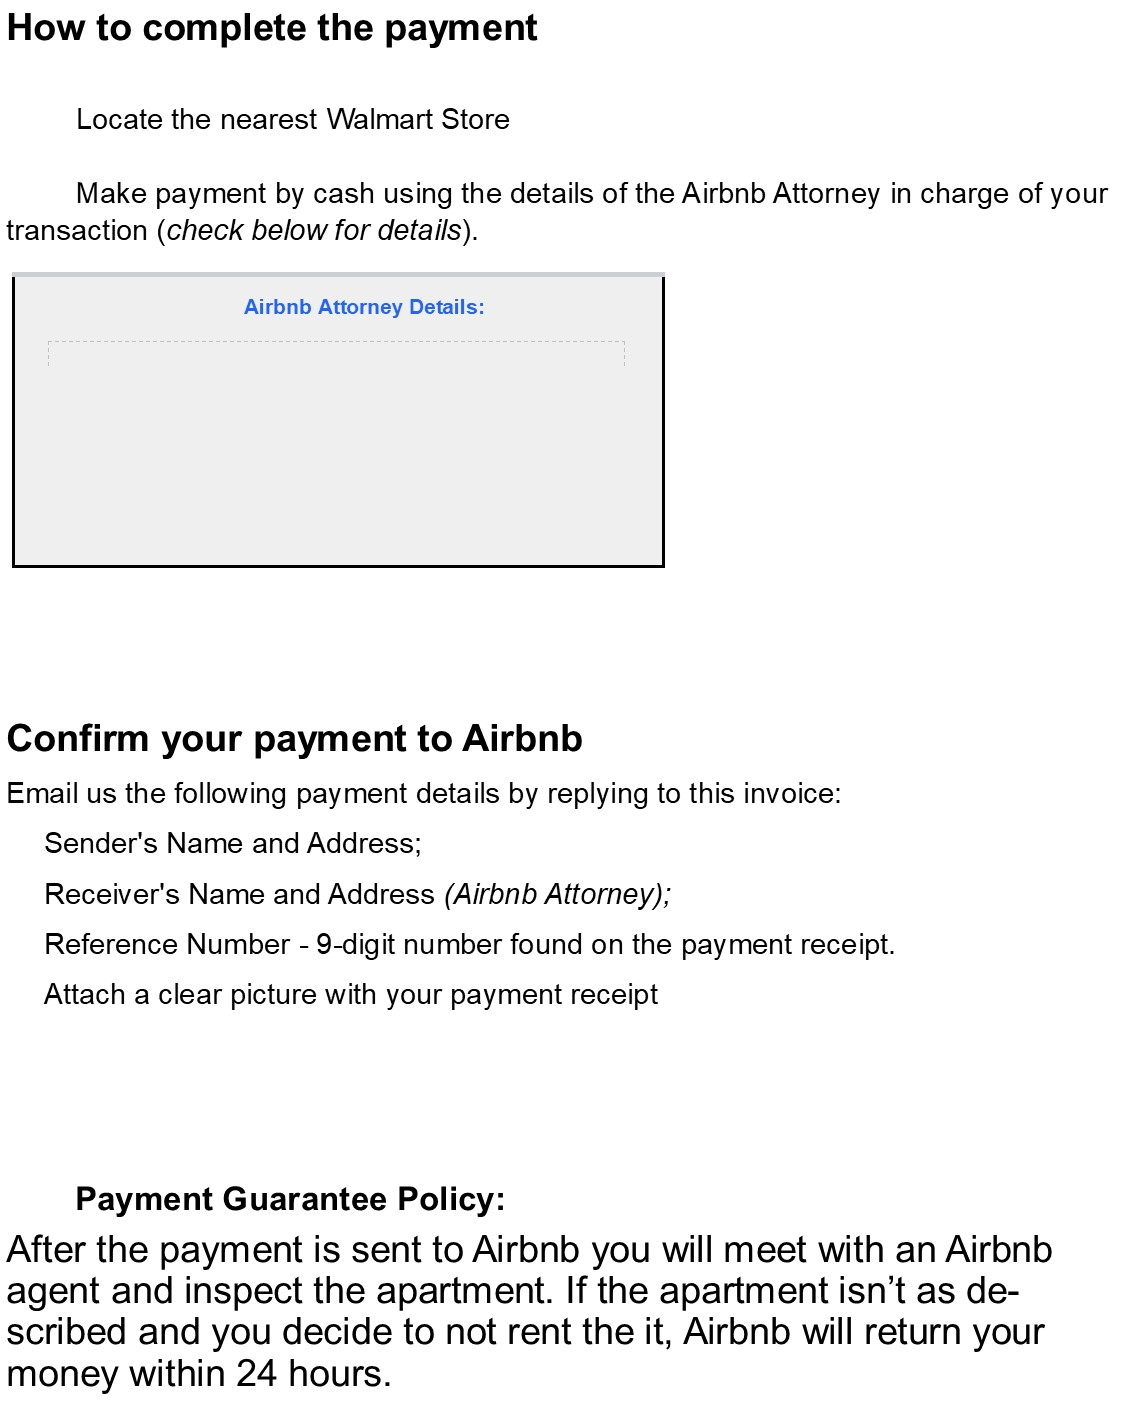 Rental scam using Airbnb? How should I go forward,    - Airbnb Community